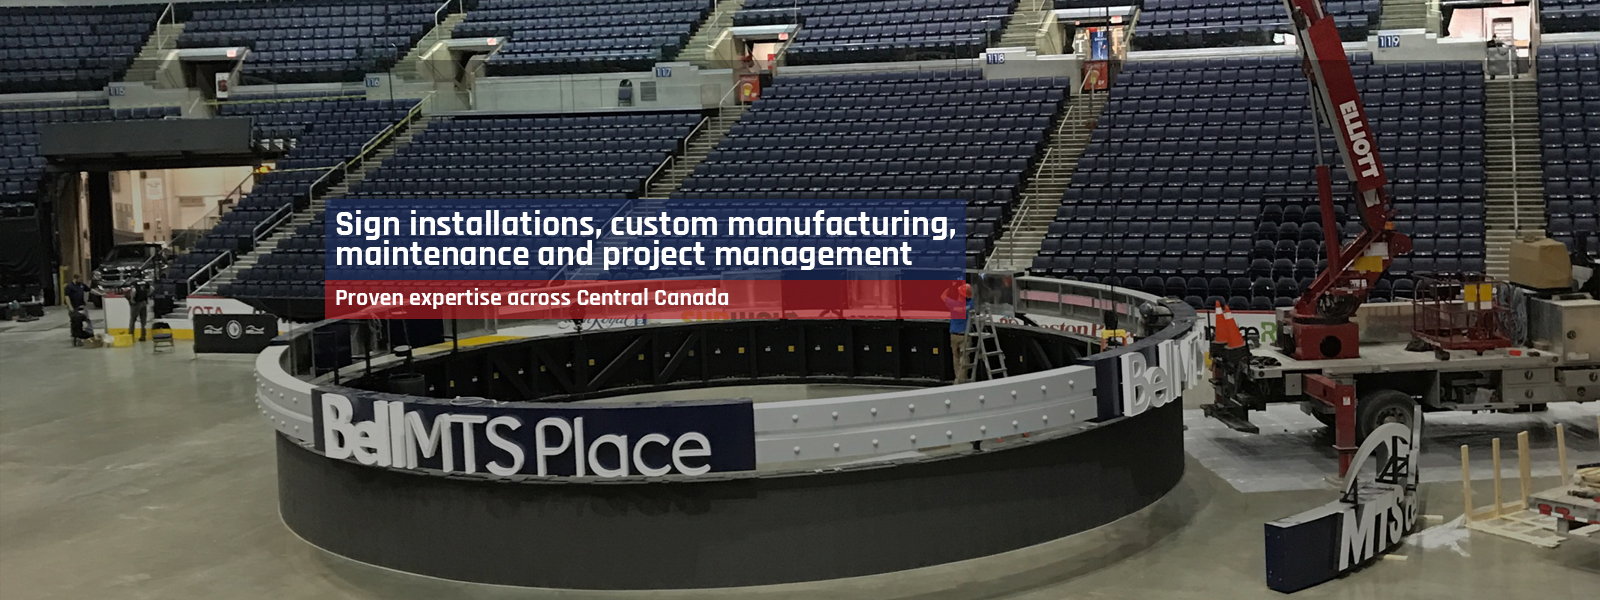 Sign installations, custom munufacturing, maintenance and project management